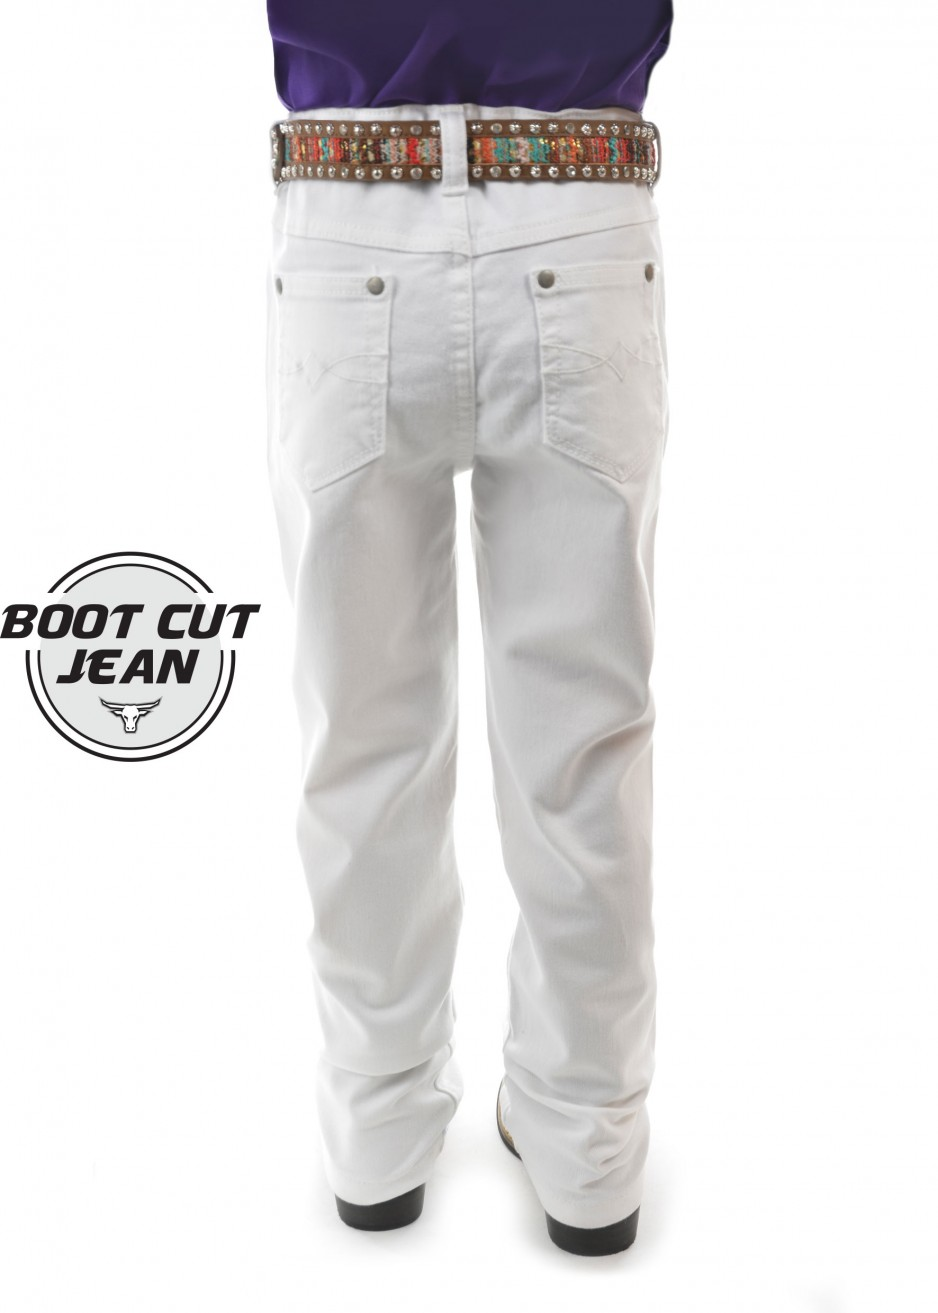 KIDS RIDING JEAN - BOOT CUT